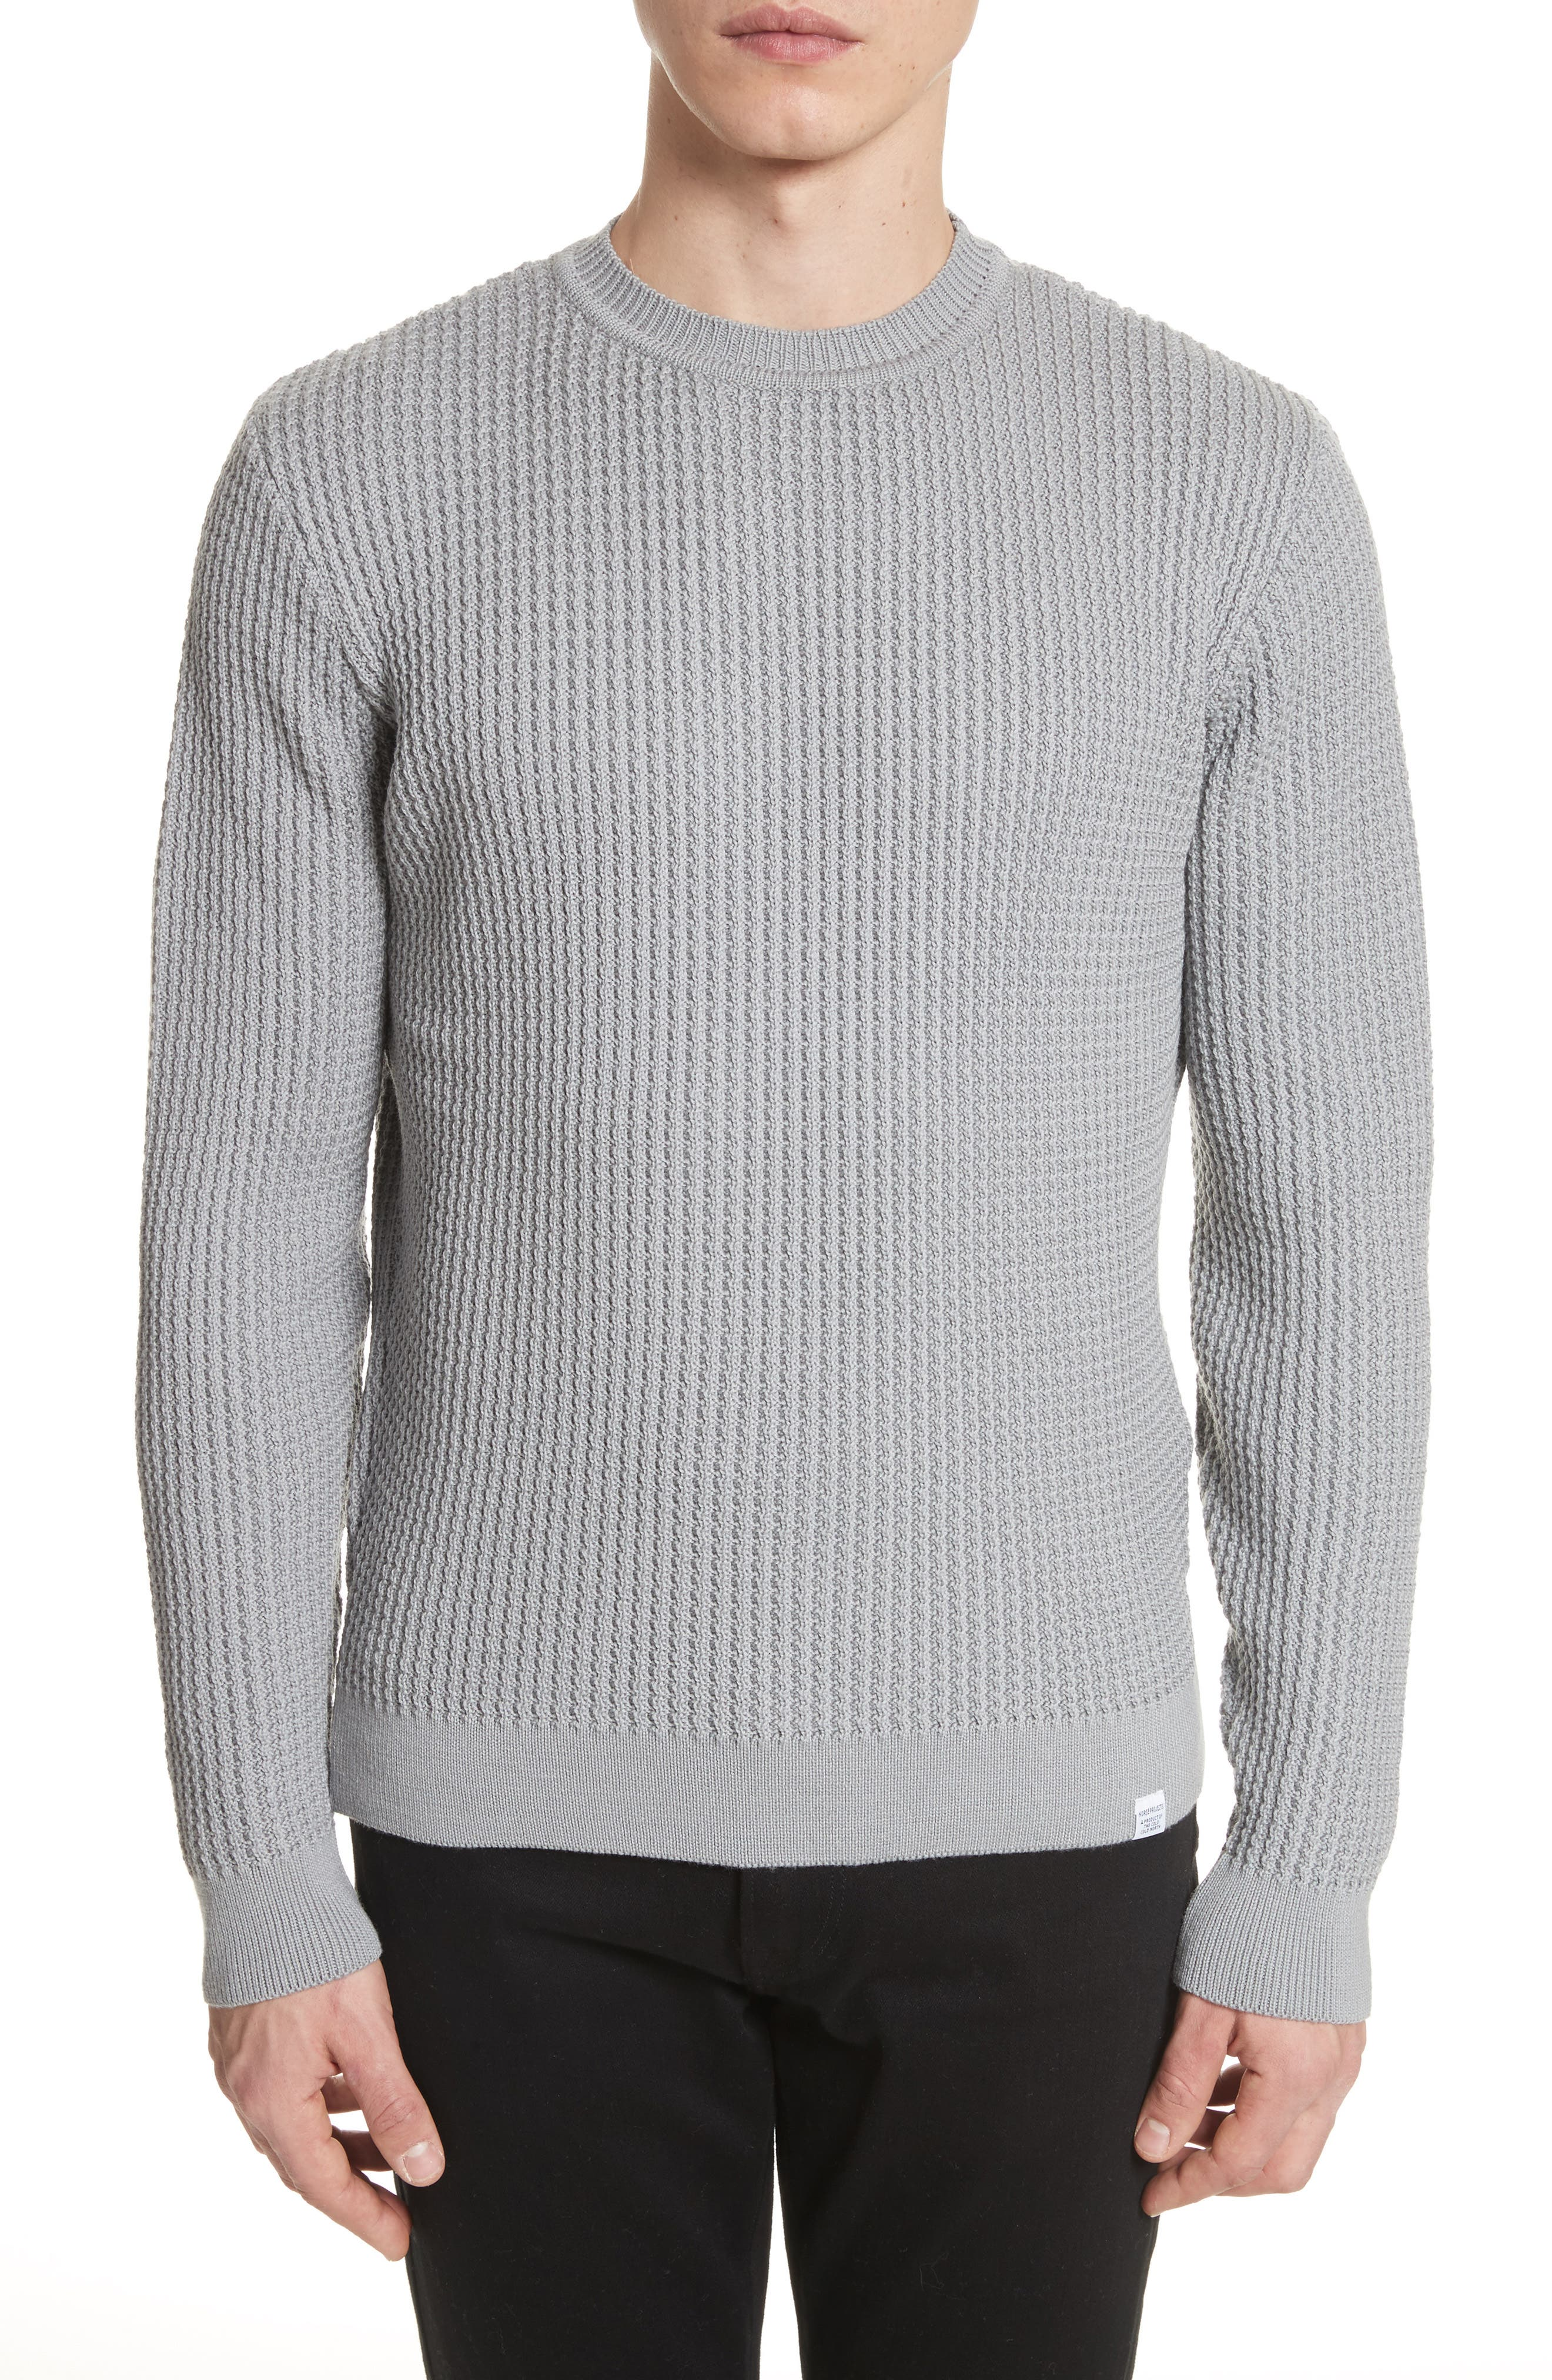 Sigfred Merino Wool Sweater,                         Main,                         color, Titanium